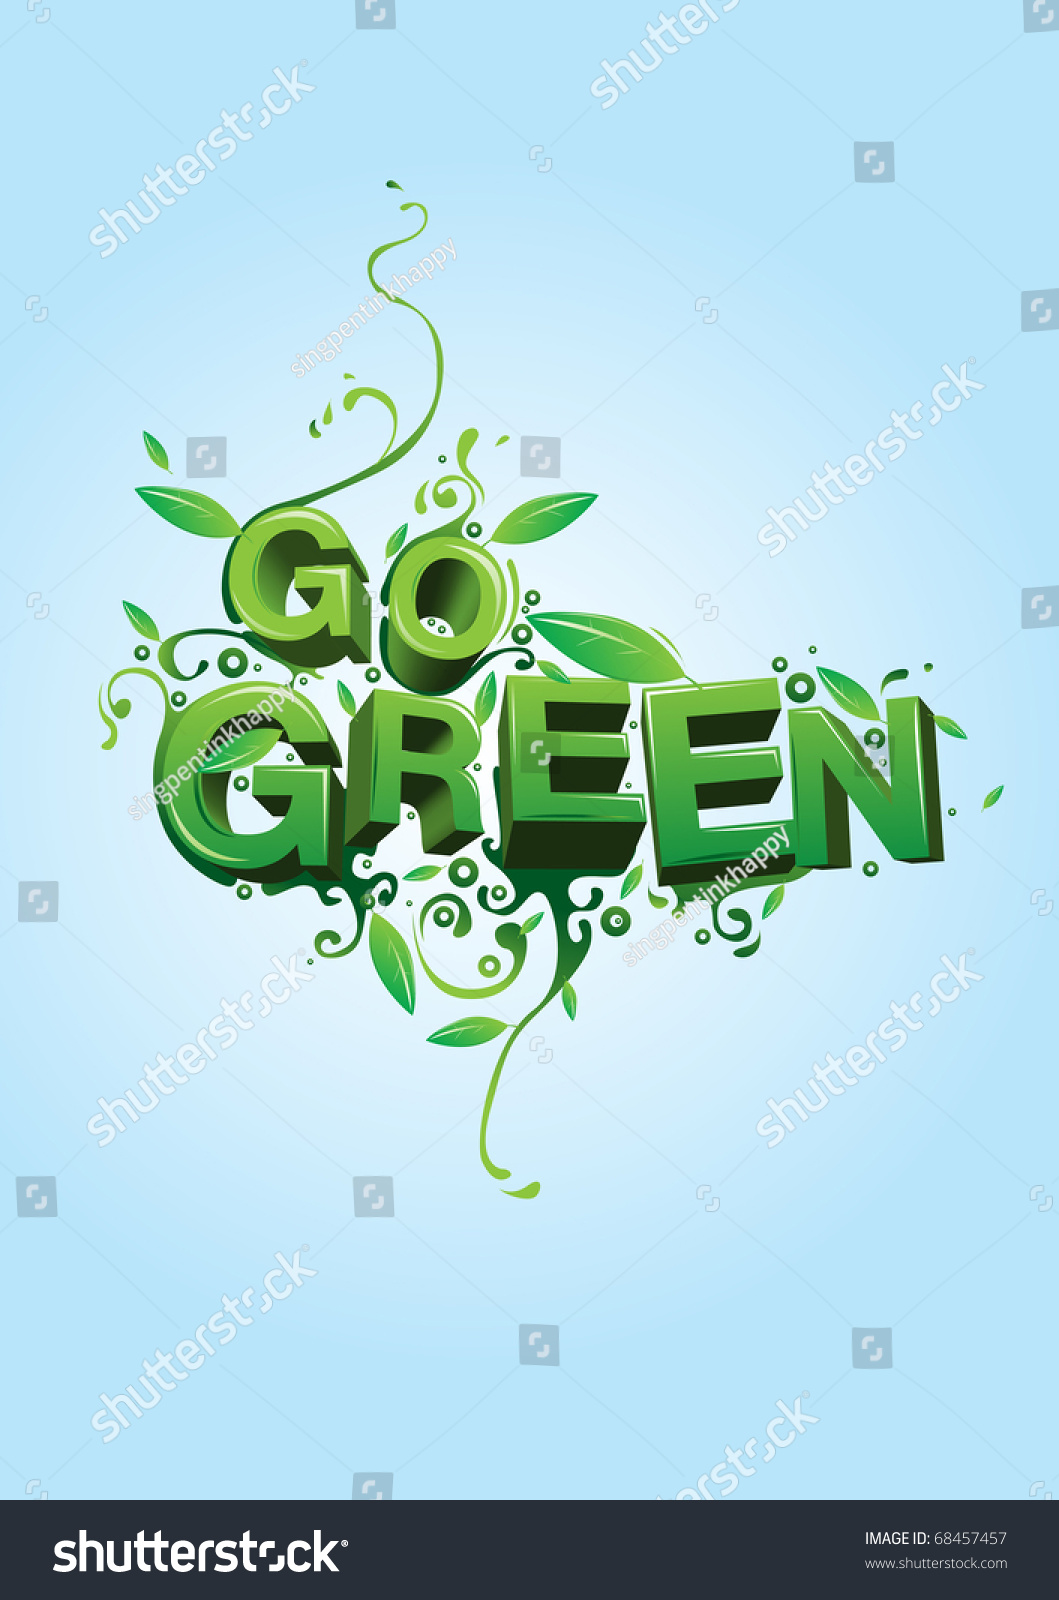 Go Green Campaign Poster Stock Vector Illustration 68457457 : Shutterstock